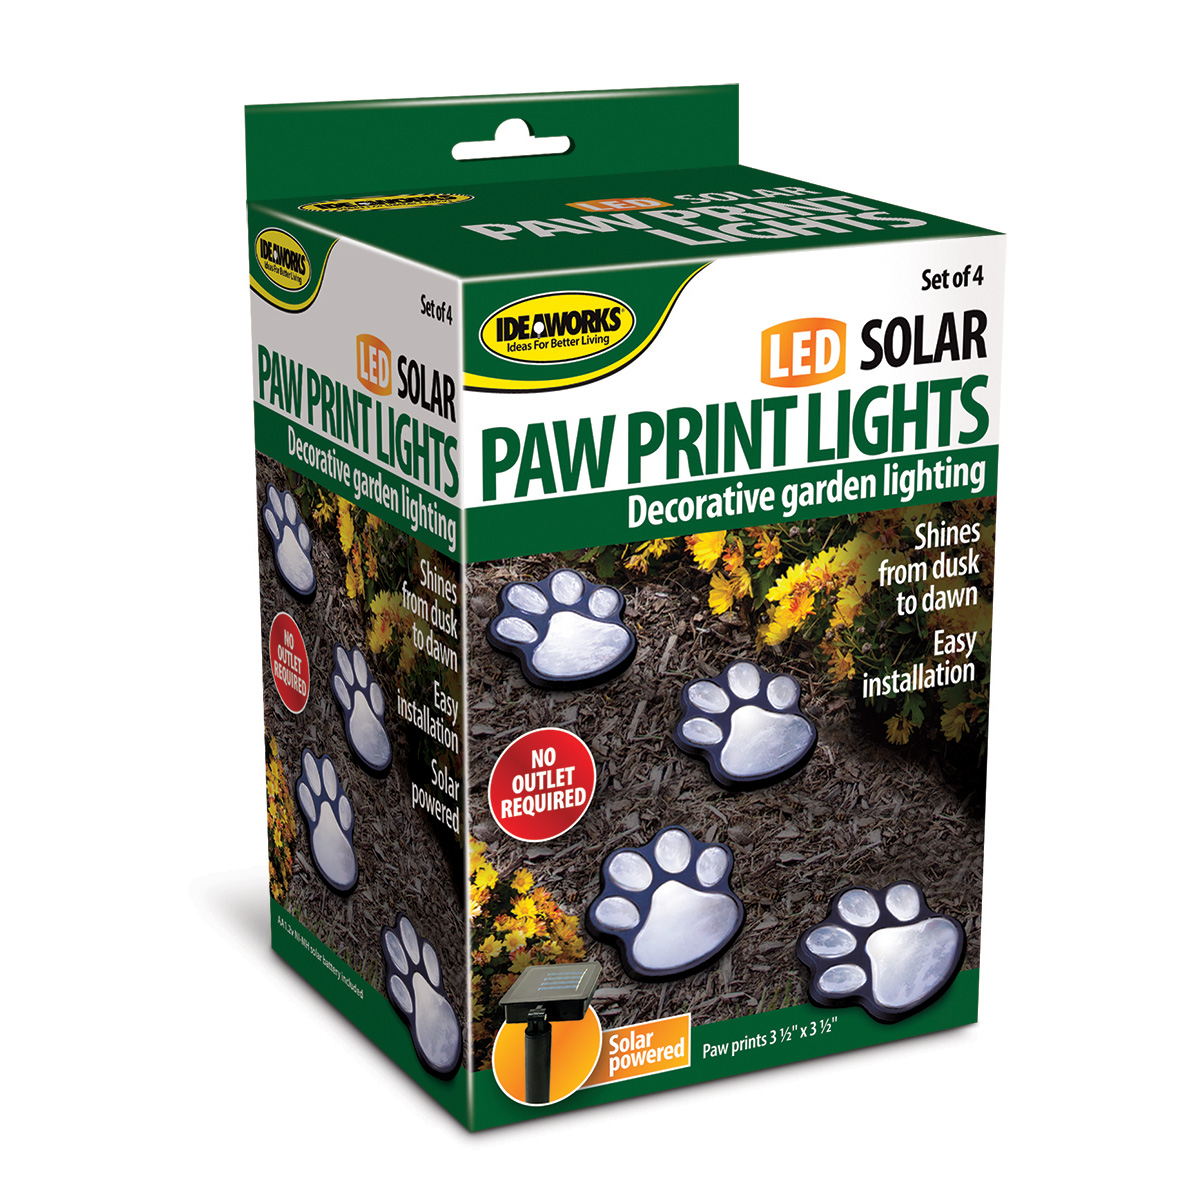 Ideawork's Set of 4 LED Pathway Paw Print Solar Lights by Jobar